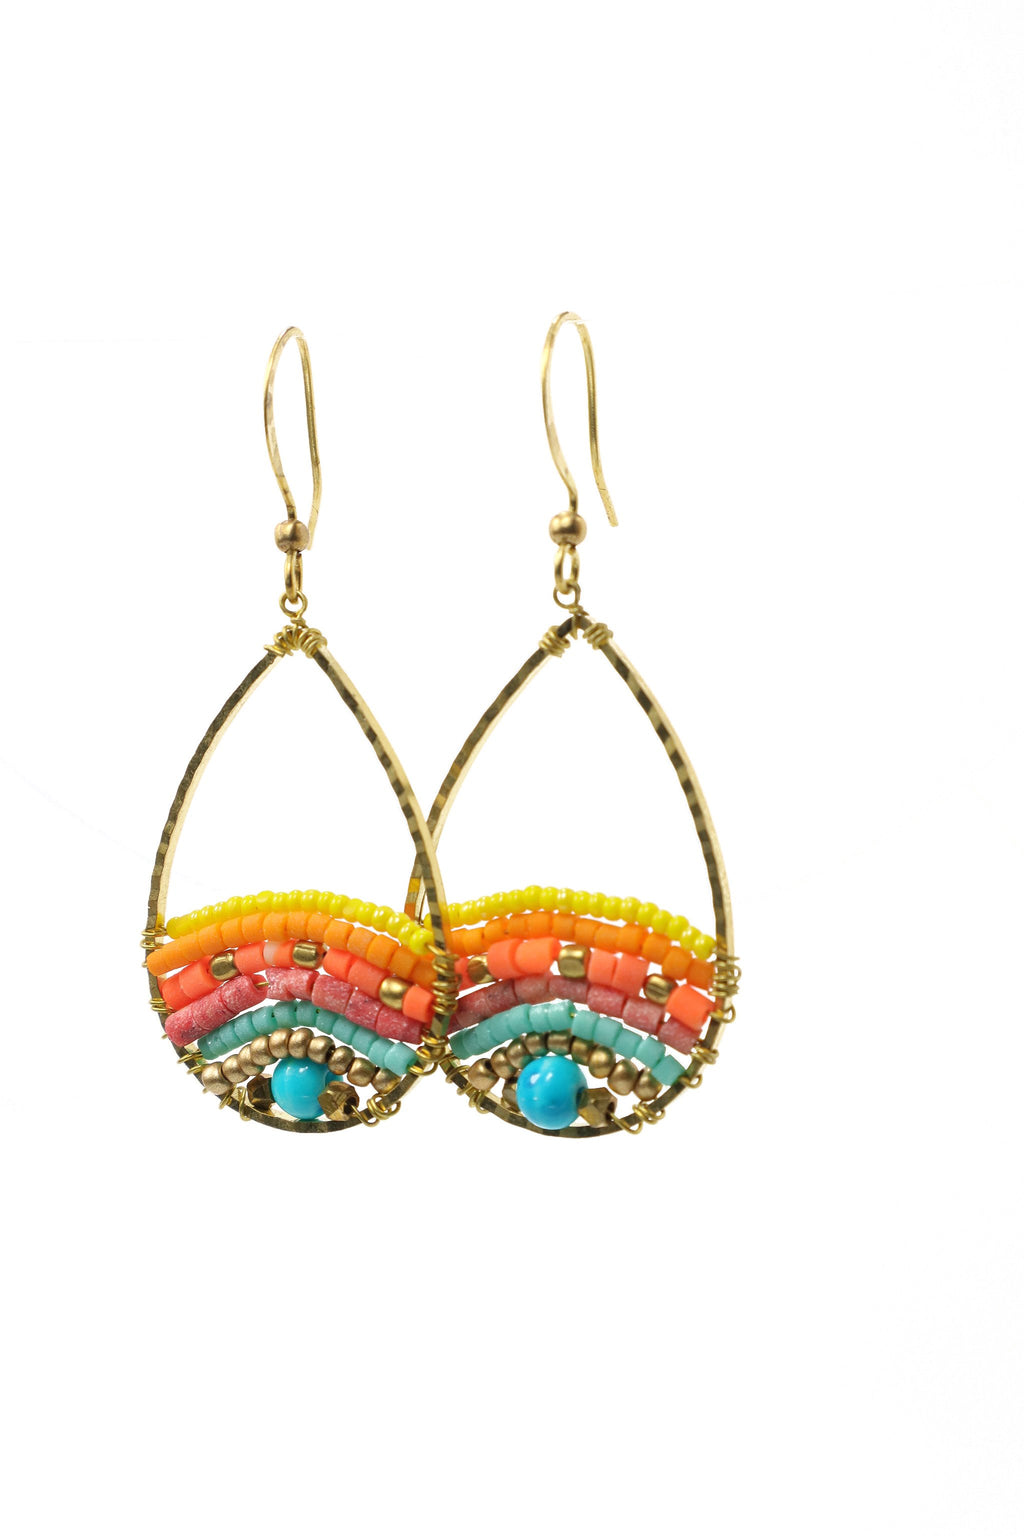 These are small teardrop island-style statement earrings with fantastic colors of a sunrise. They feature Afghani style tube beads, brass and acrylic beads. They are handmade with love in Thailand. This is a Fairtrade Product.